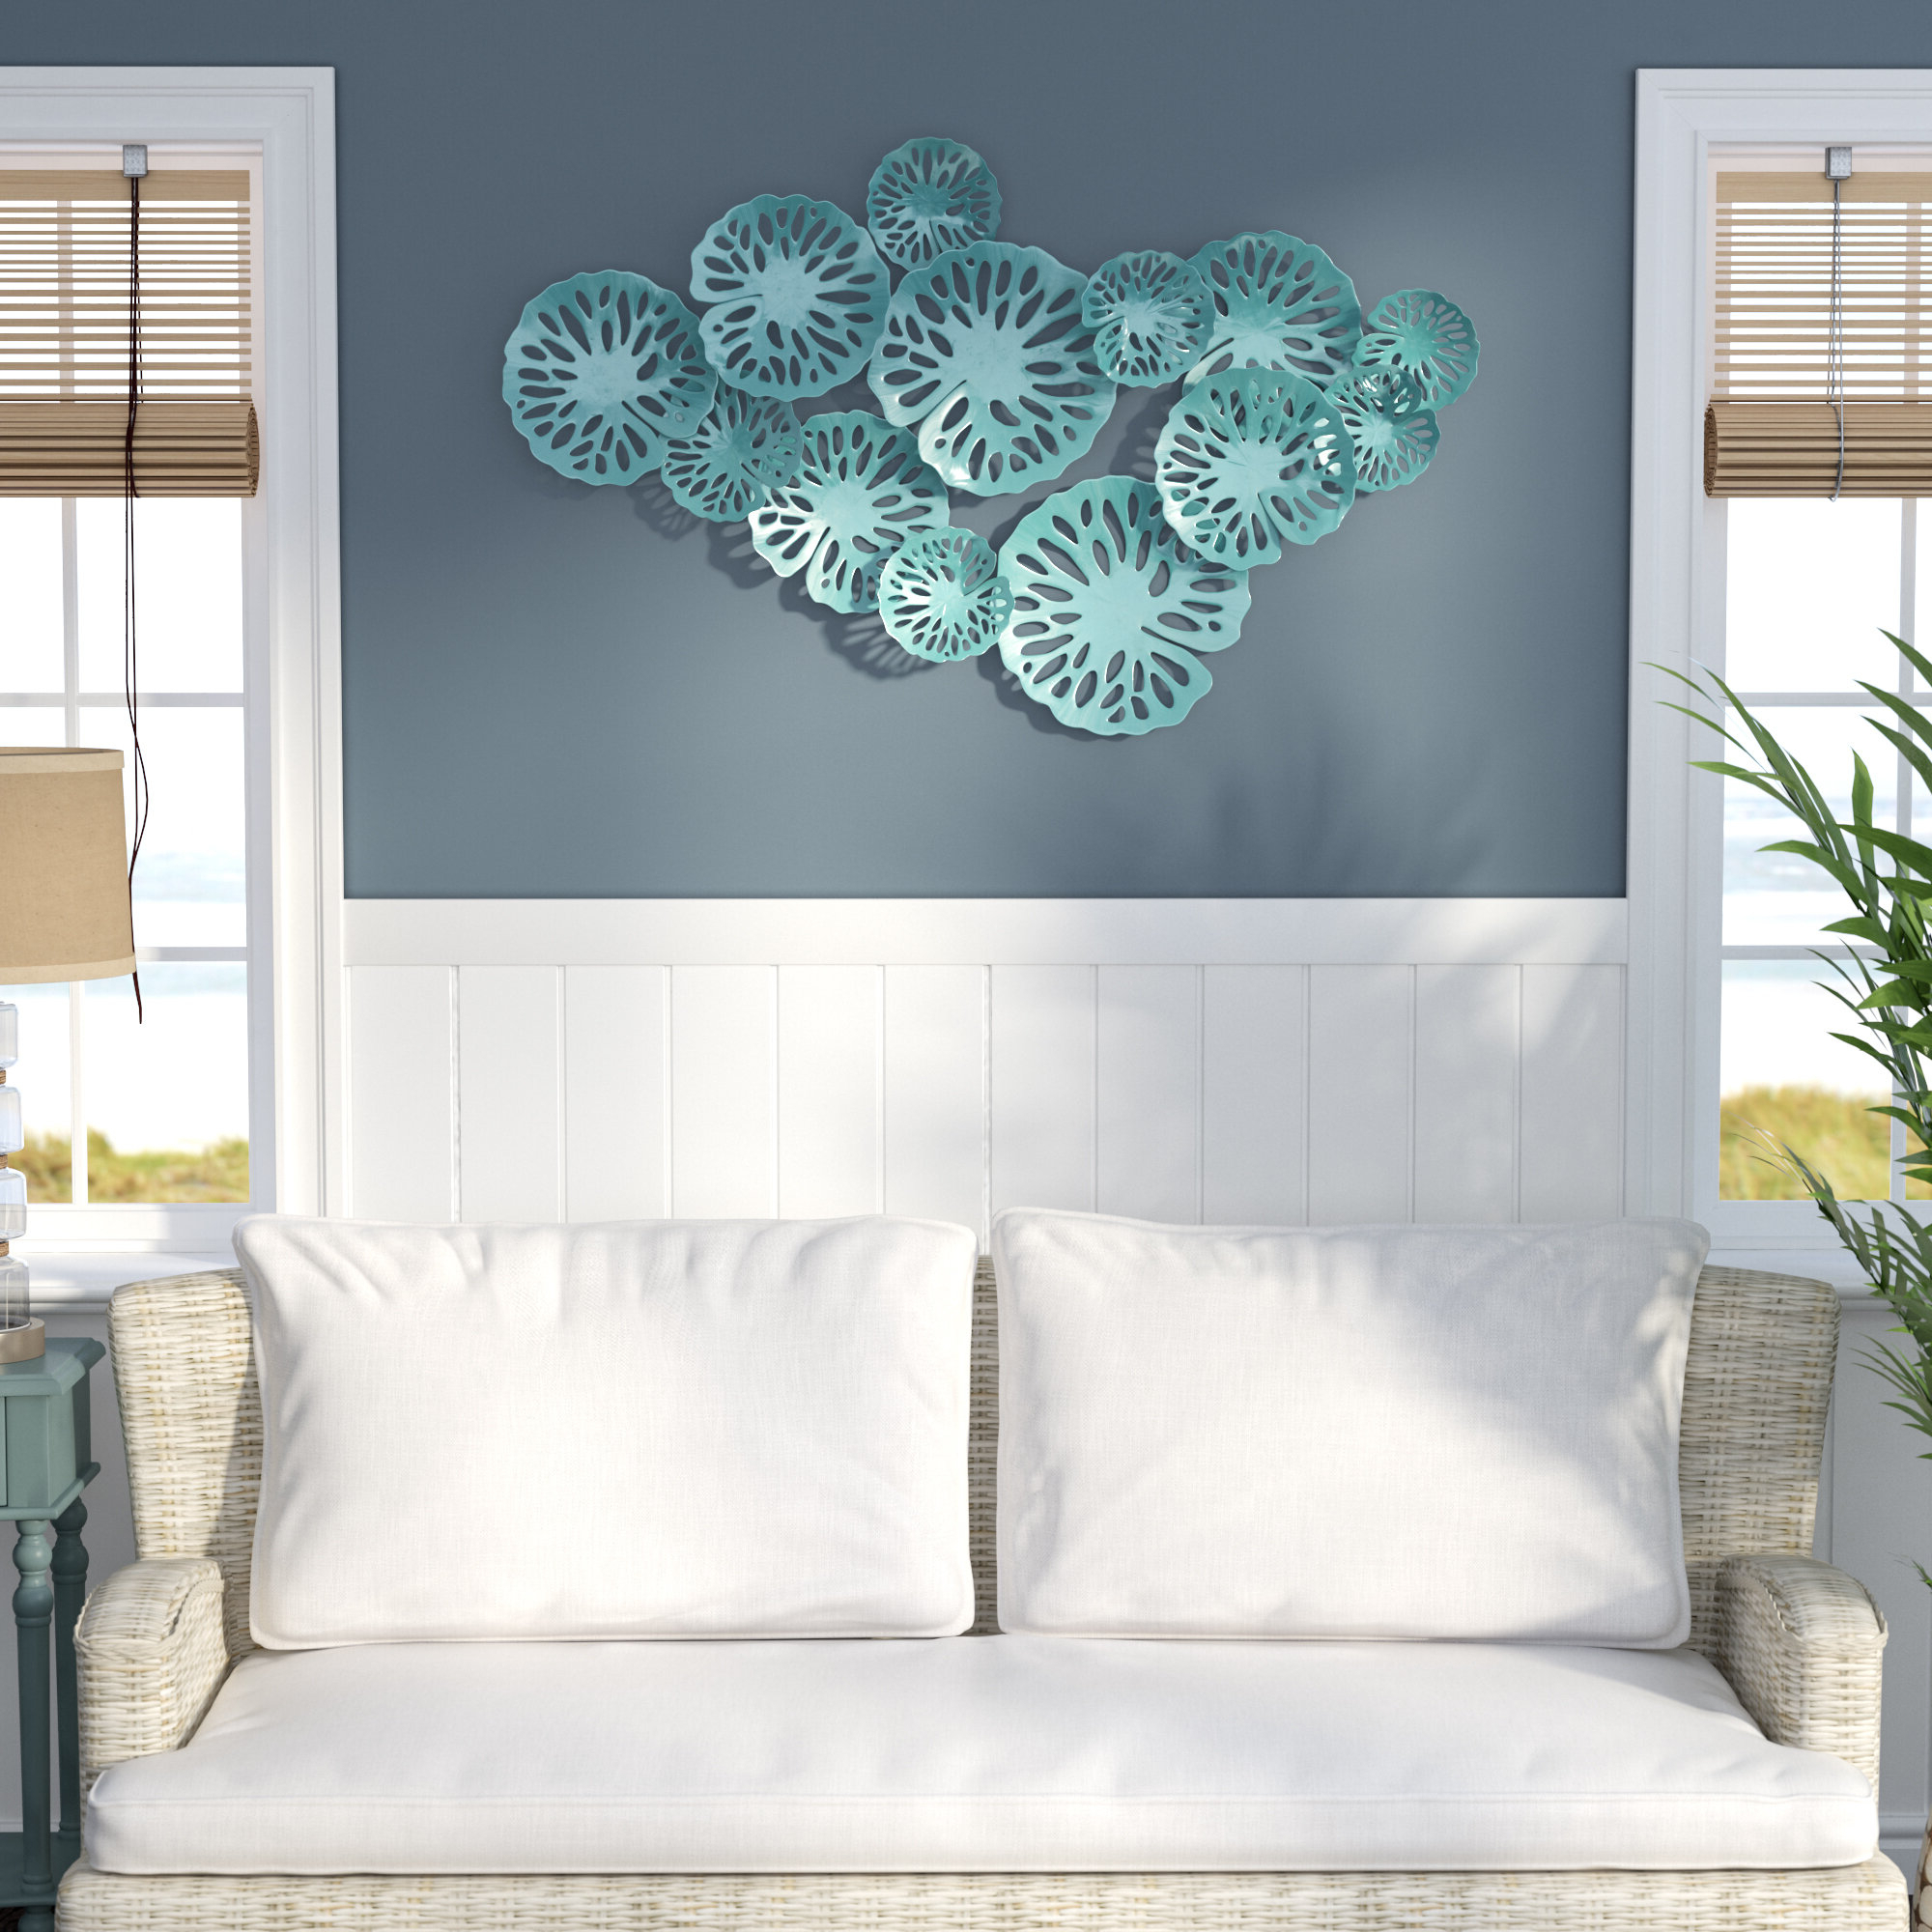 Metal Birds Wall Décor By Beachcrest Home Inside Preferred Sand Dollar Cluster Wall Décor (View 20 of 20)